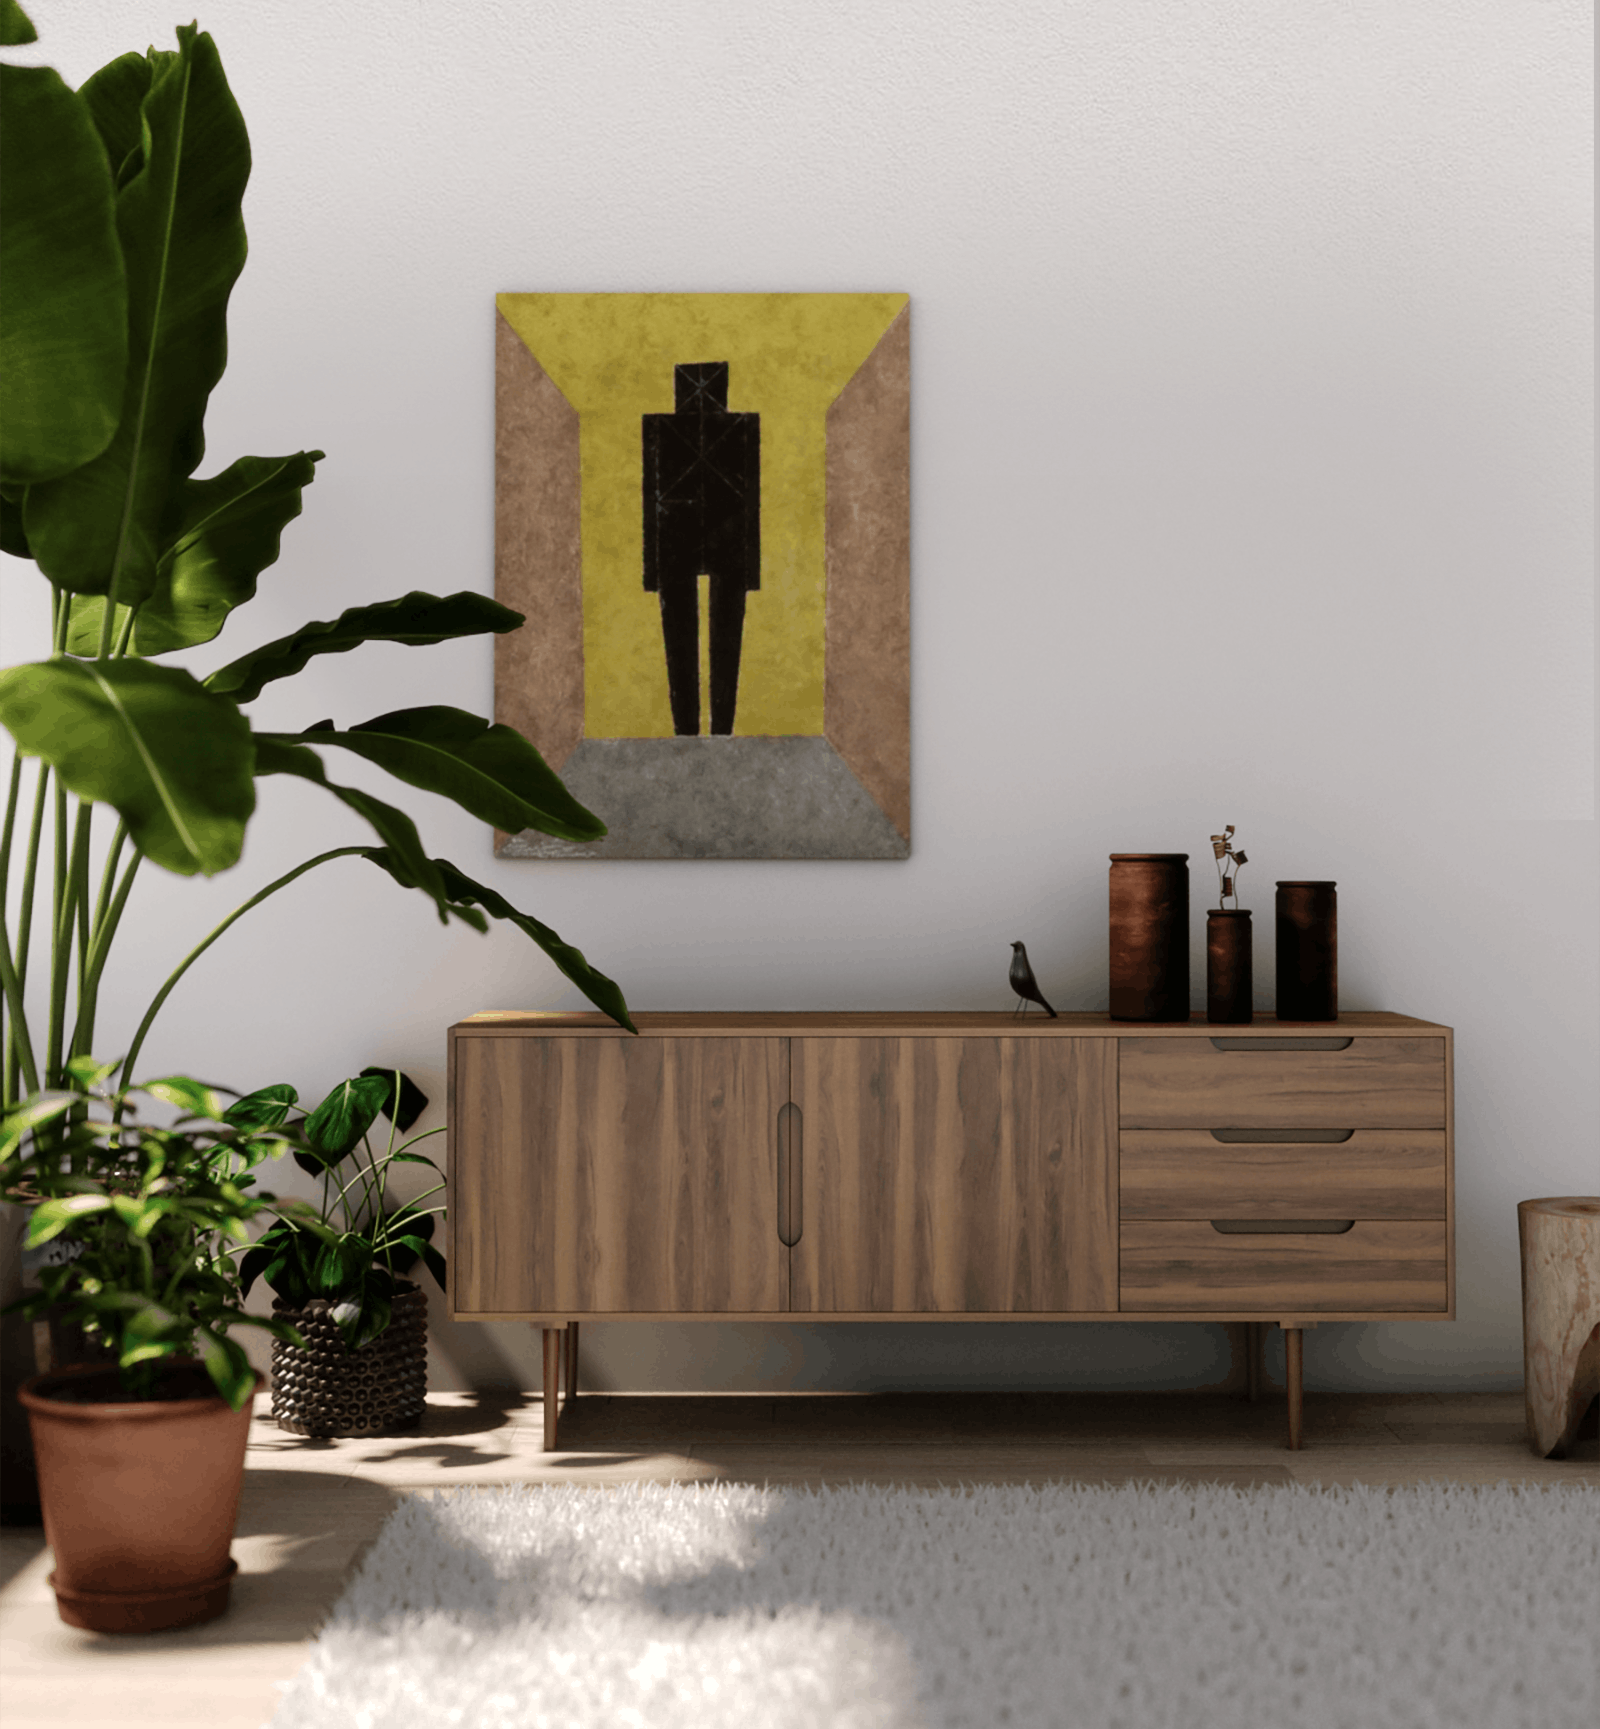 Free stock photo of wood, plants, apartment, design